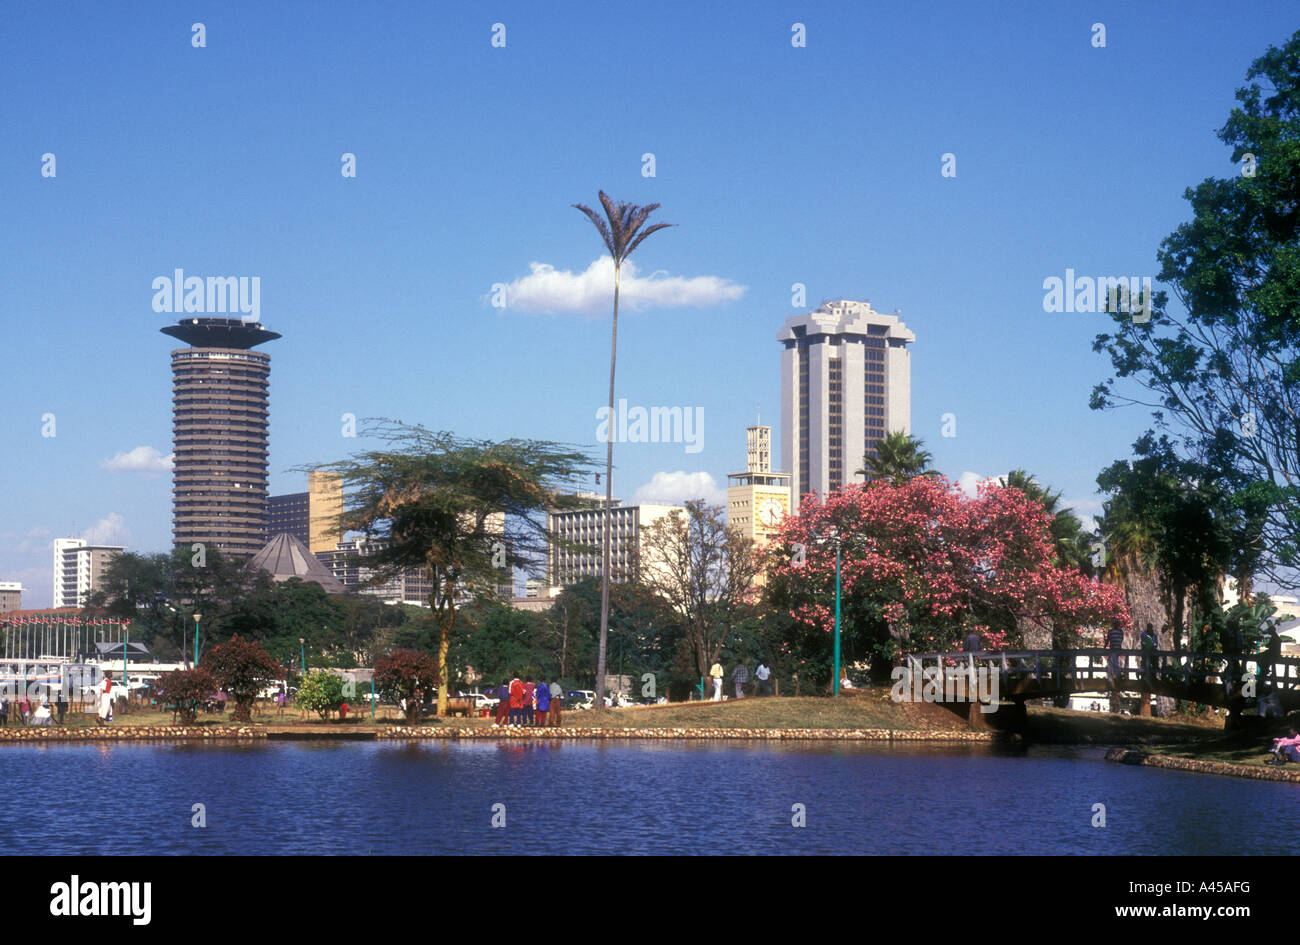 Nairobi city skyline seen from the boating lake in Uhuru Park Kenya East Africa Stock Photo